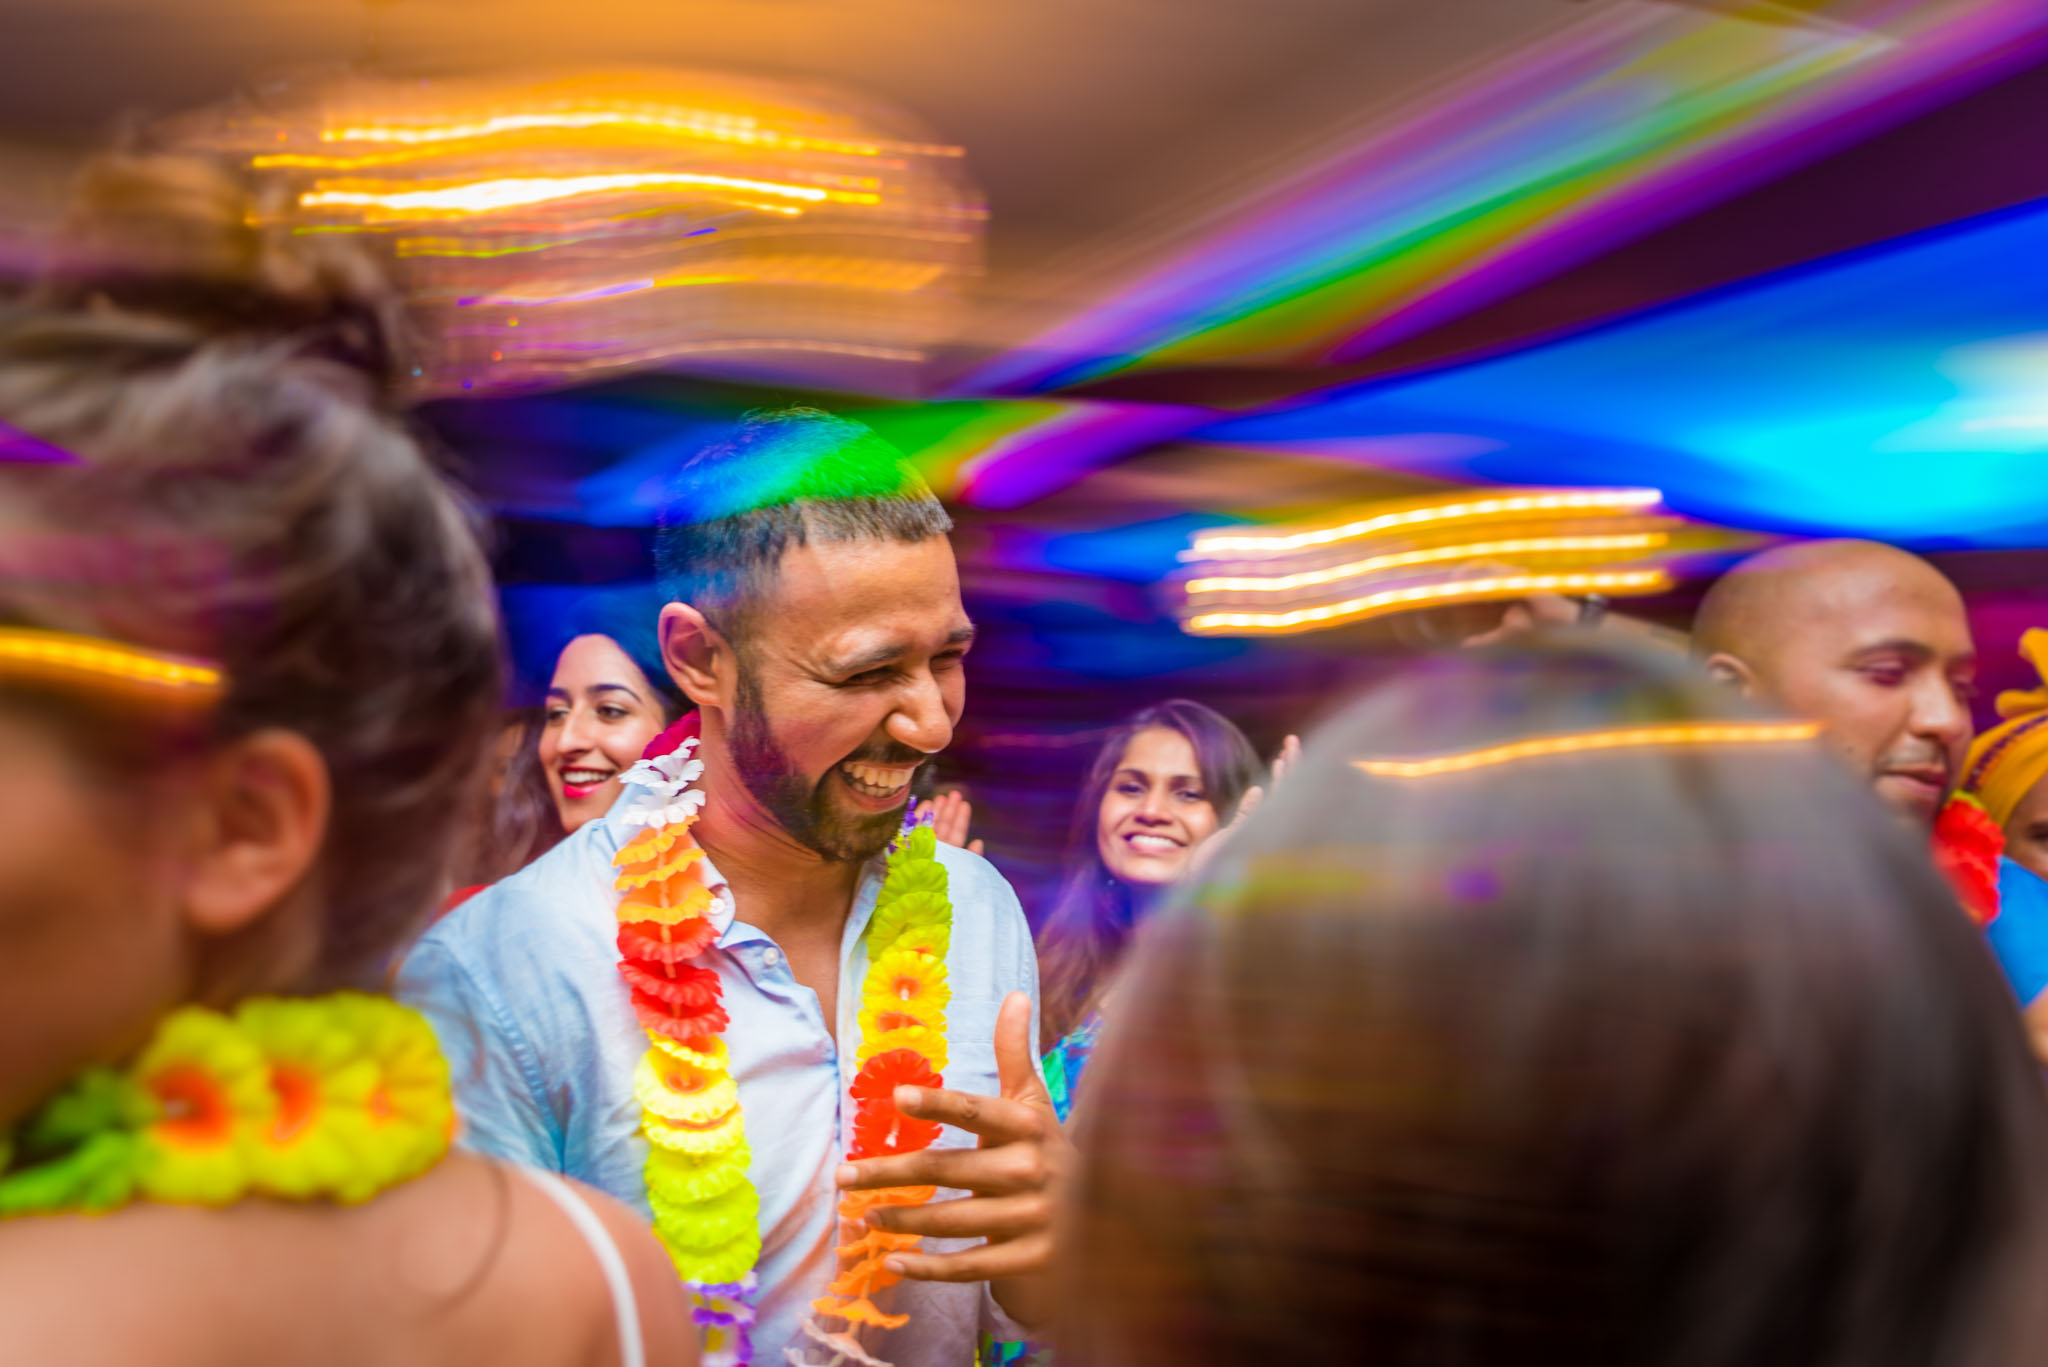 Candid-Wedding-Photography-WhatKnot-Goa-57